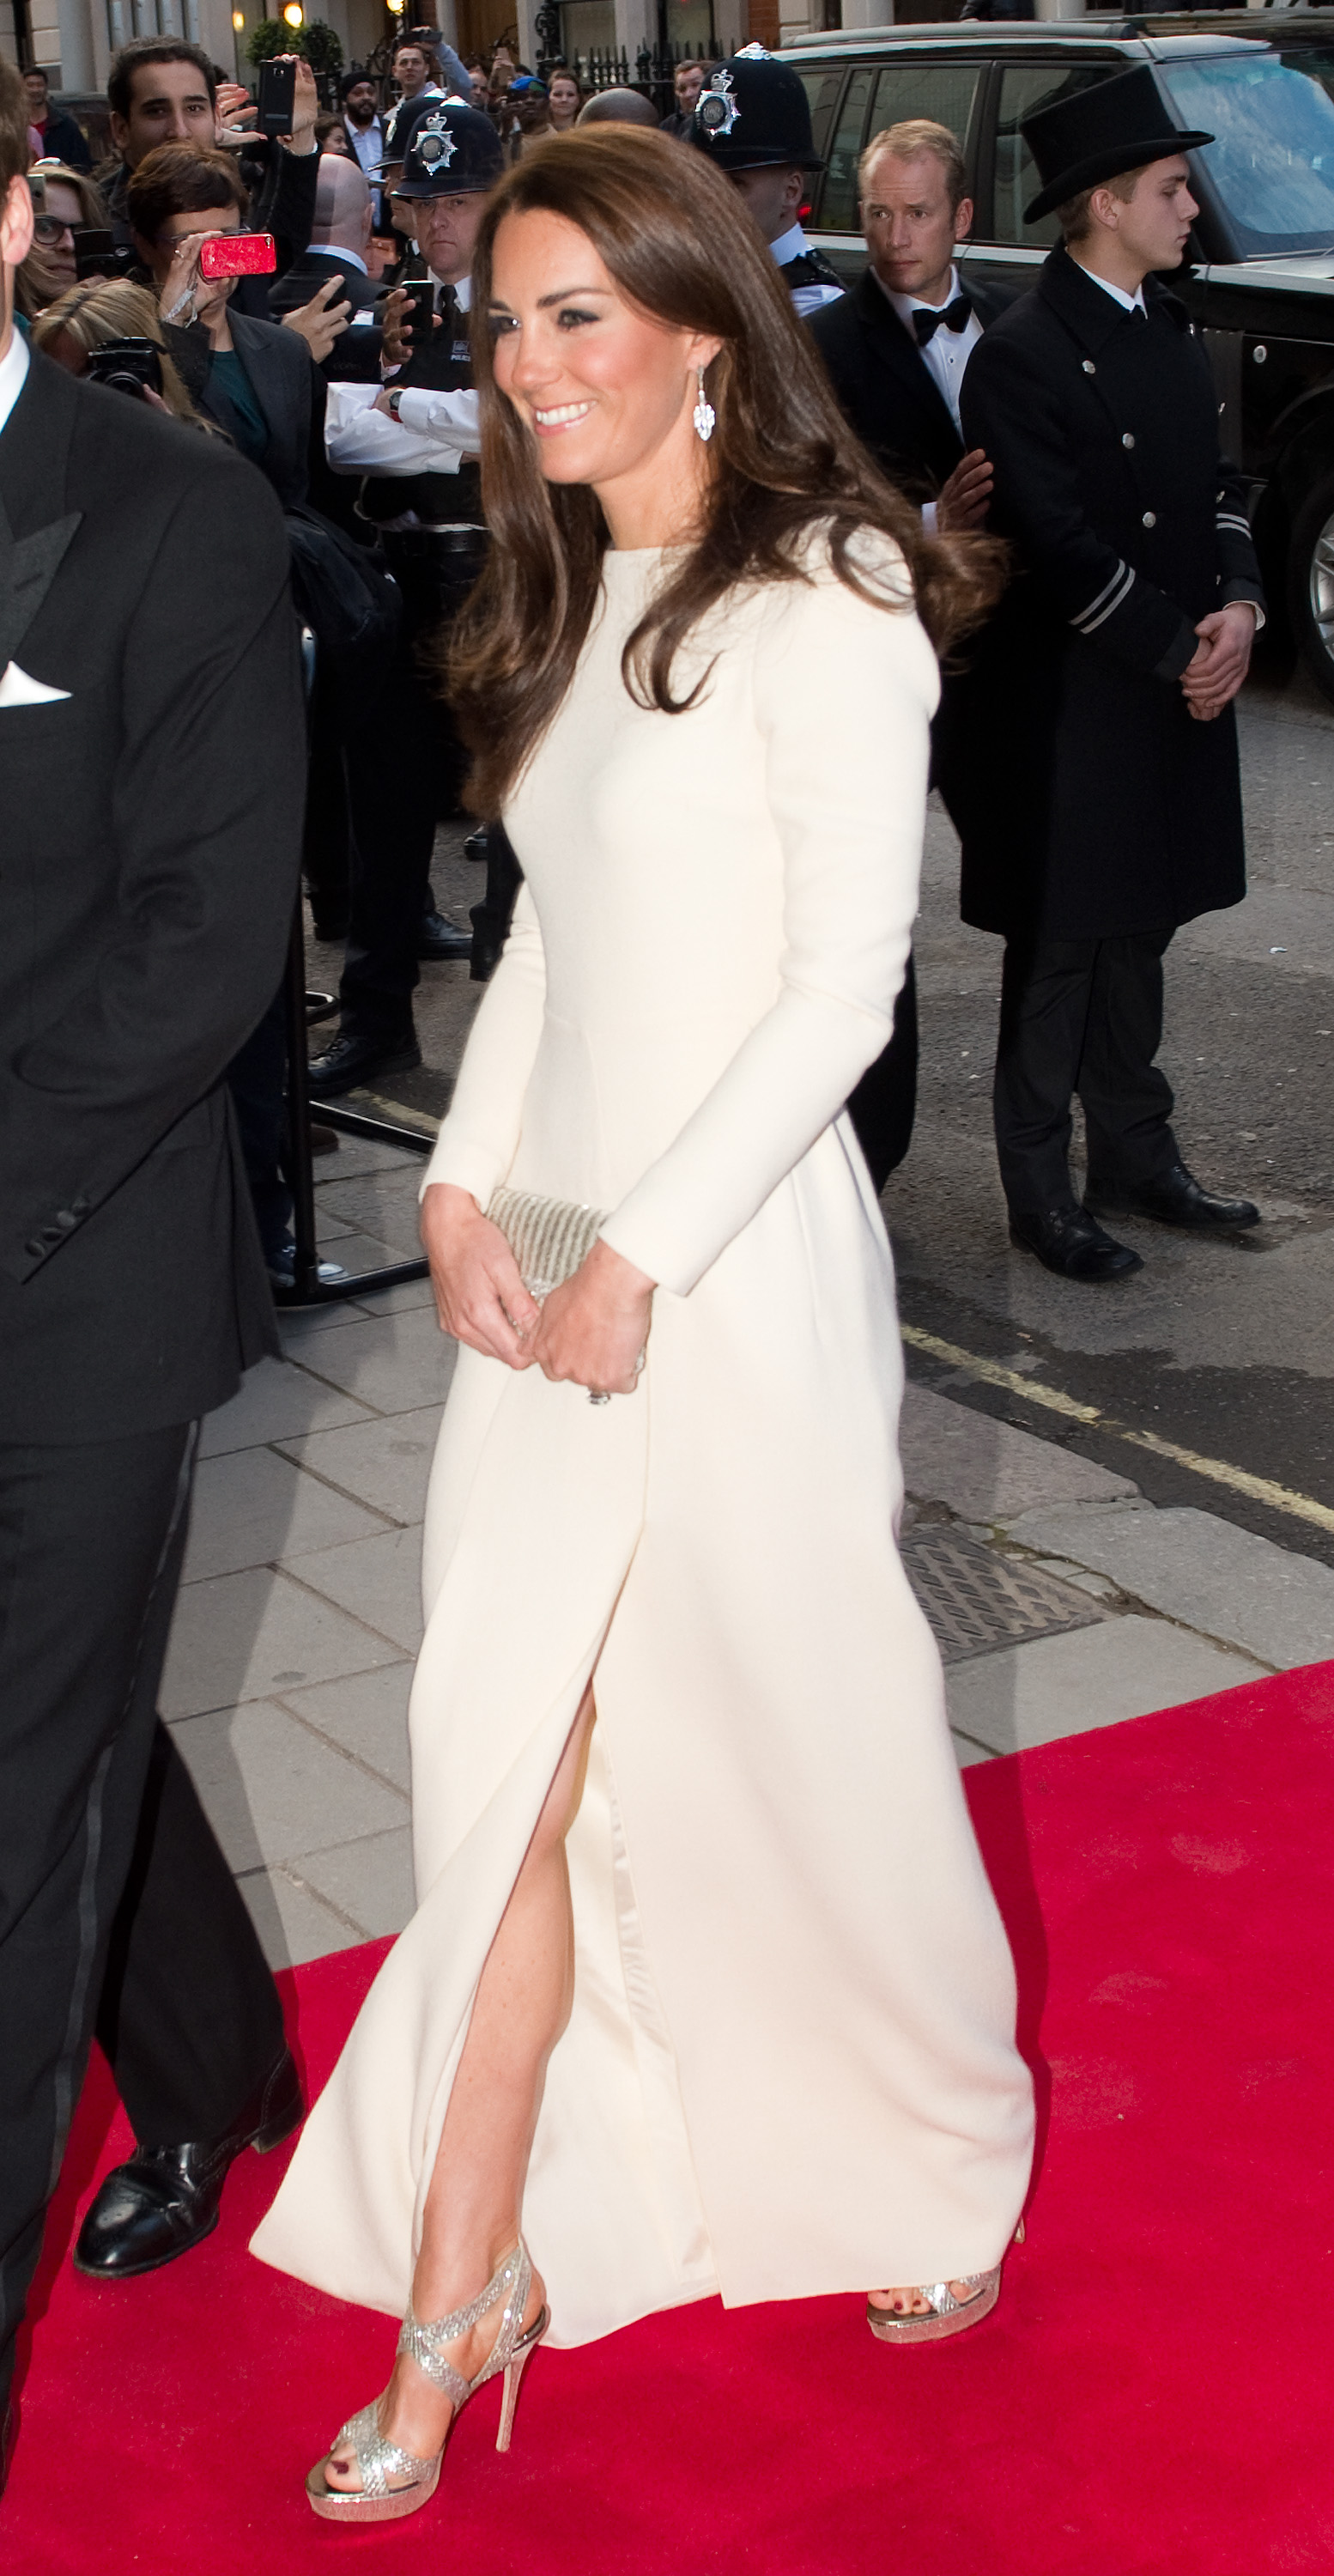 <strong>Dinner Guest</strong>                                   On May 8, 2012, the Duchess attended an event hosted by The Thirty Club at Claridges in London wearing a white gown by Roland Mouret and Jimmy Choo heels.